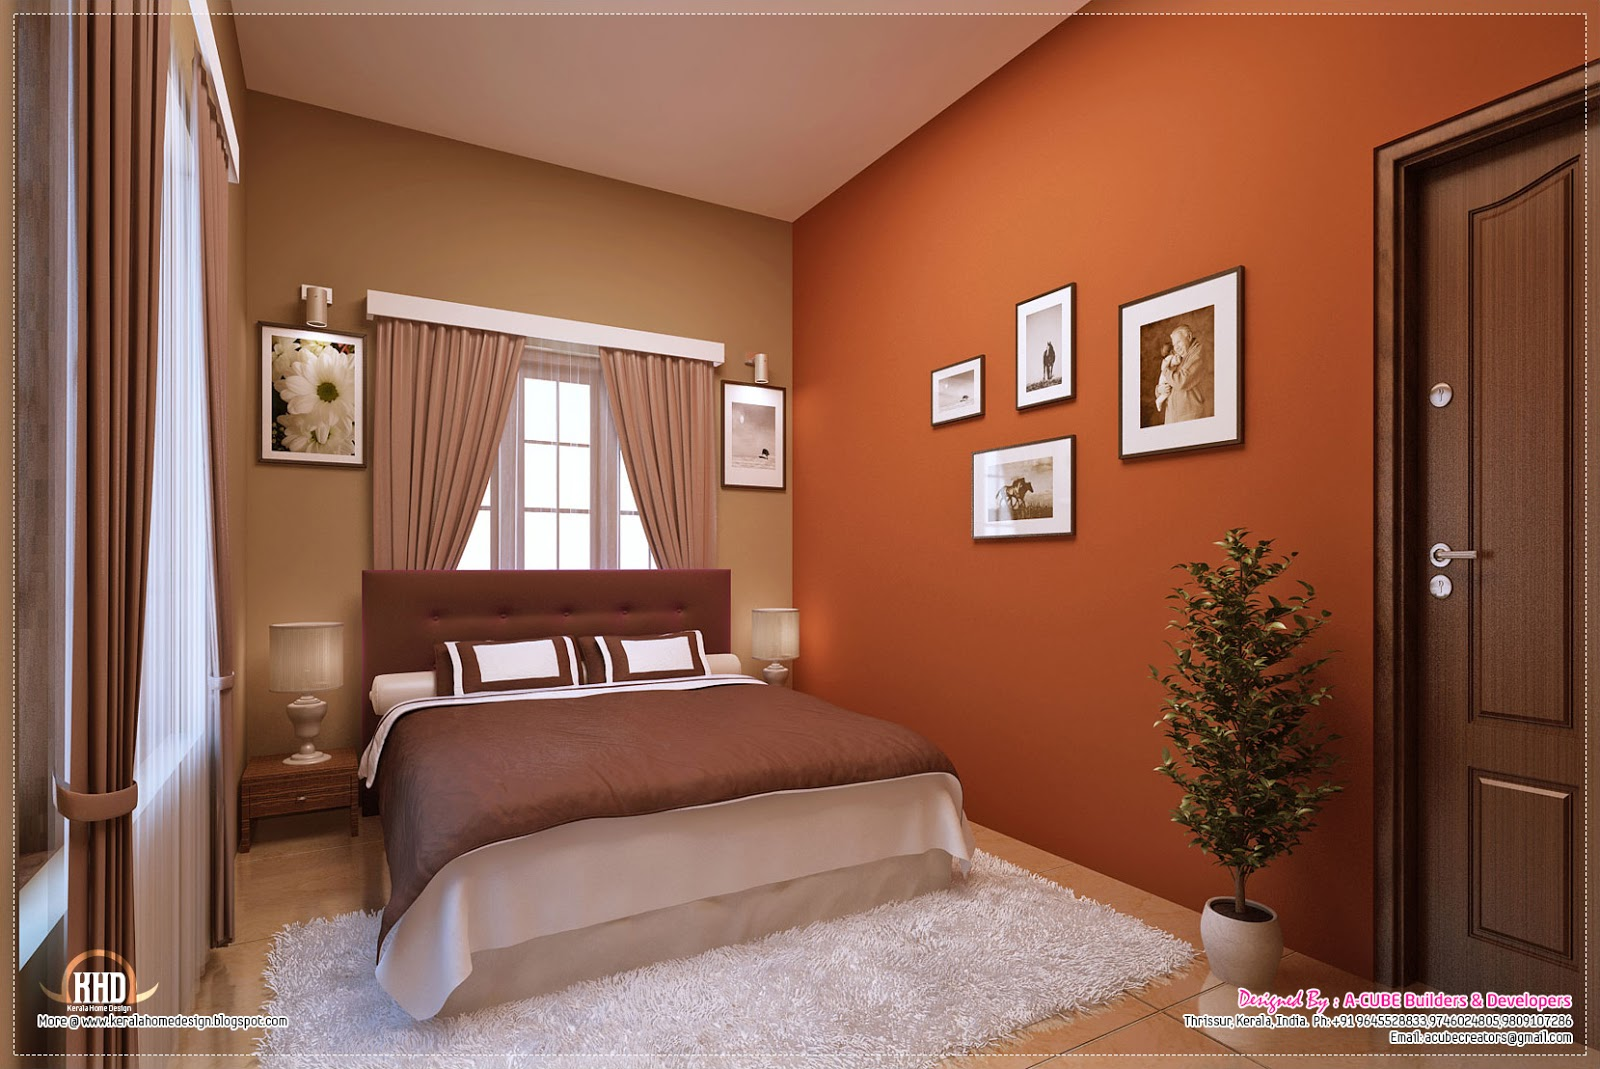 Awesome interior decoration ideas home kerala plans for Master bedroom images